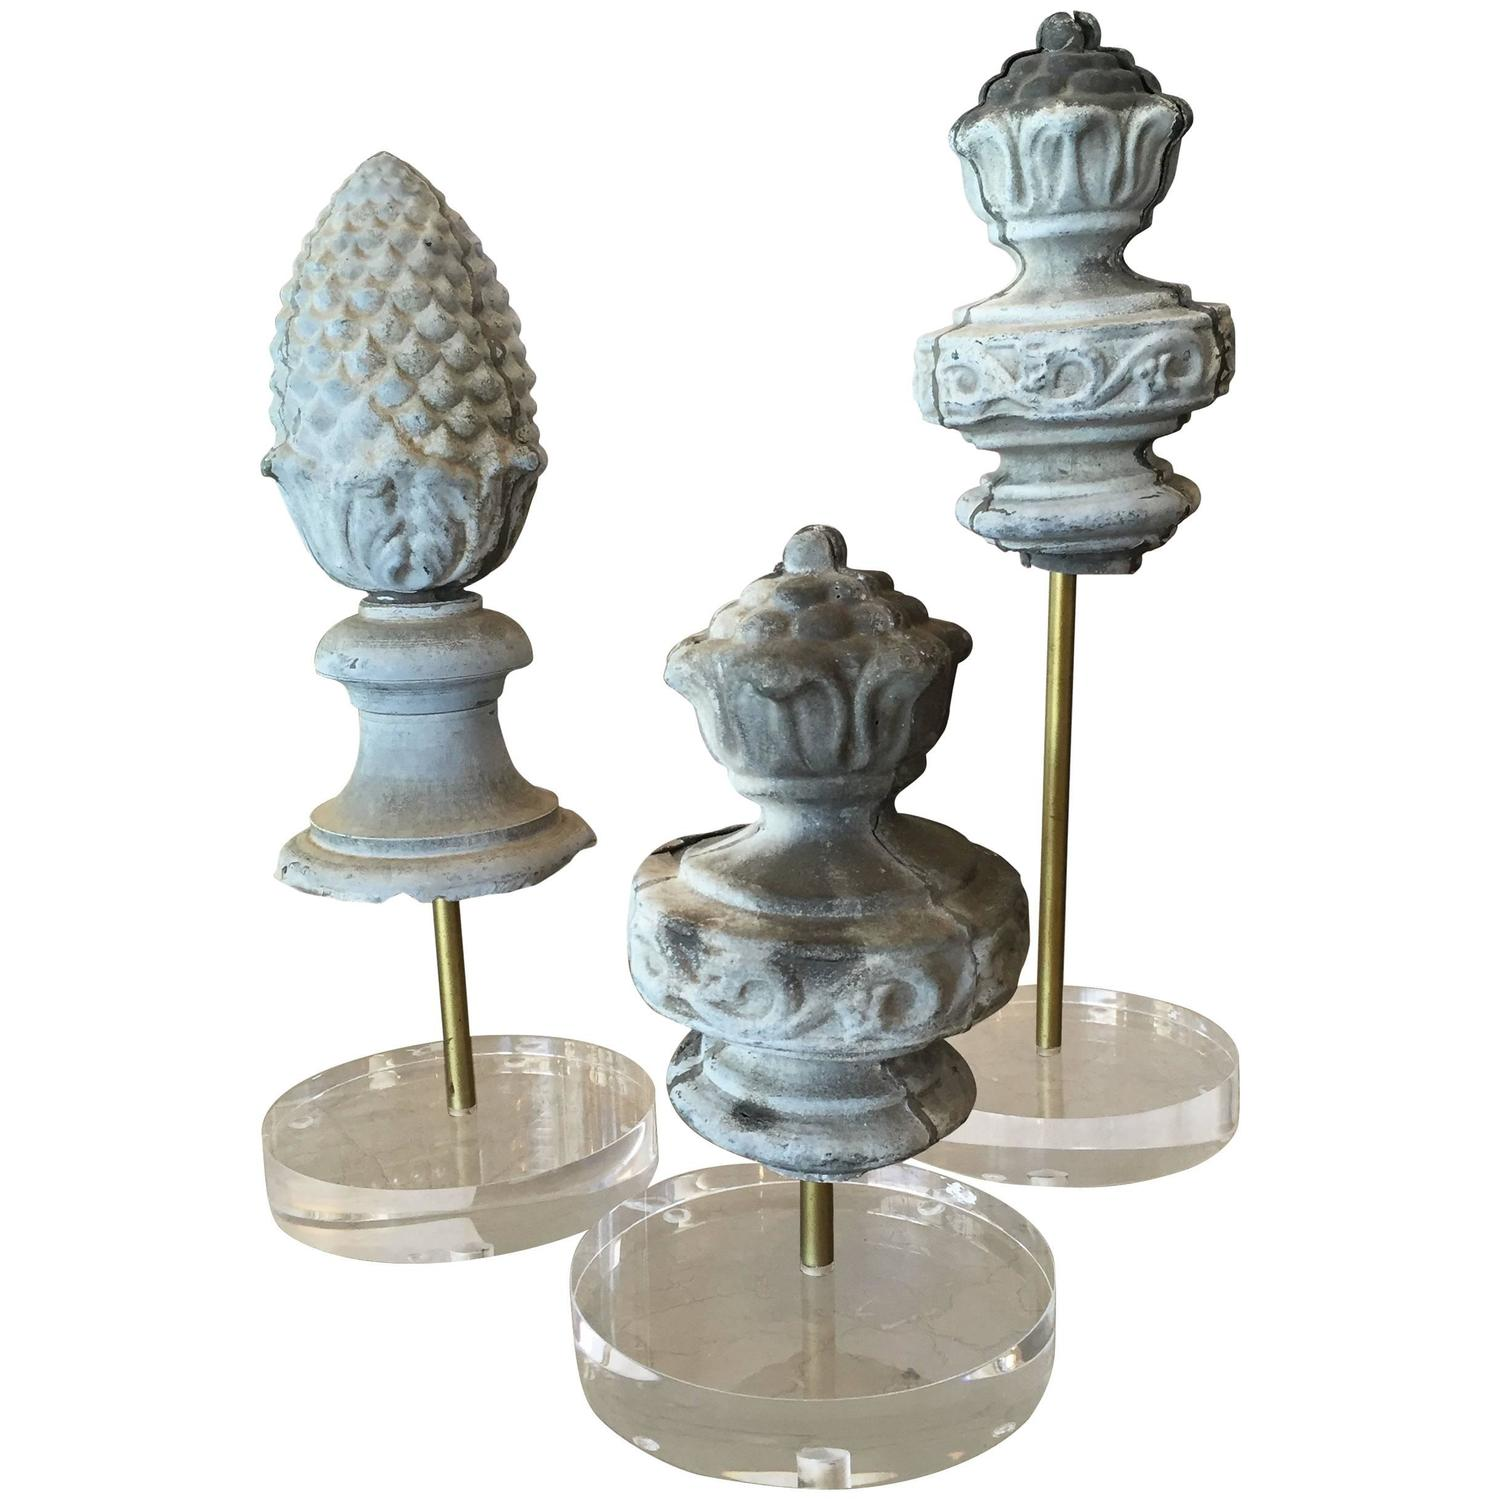 Antique zinc artifacts mounted on brass poles and lucite bases. I love the juxtaposition between the old and new.    Collection available at  Shop Tiffany .